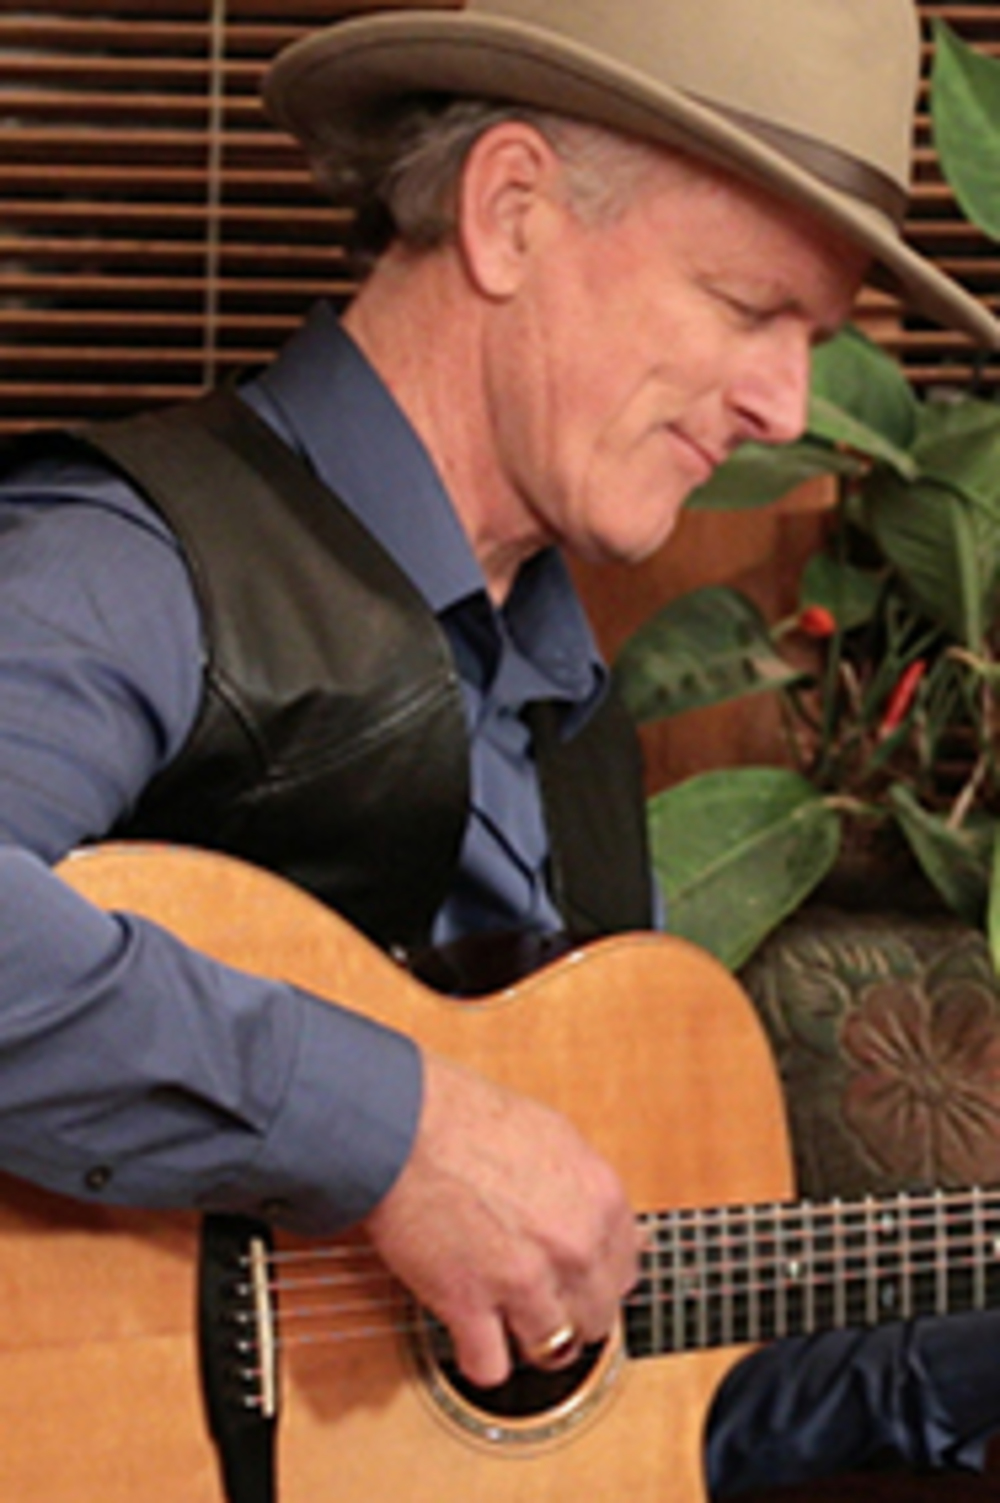 10/6/2018 - Introduction to Fingerstyle Blues with Mark Hanson